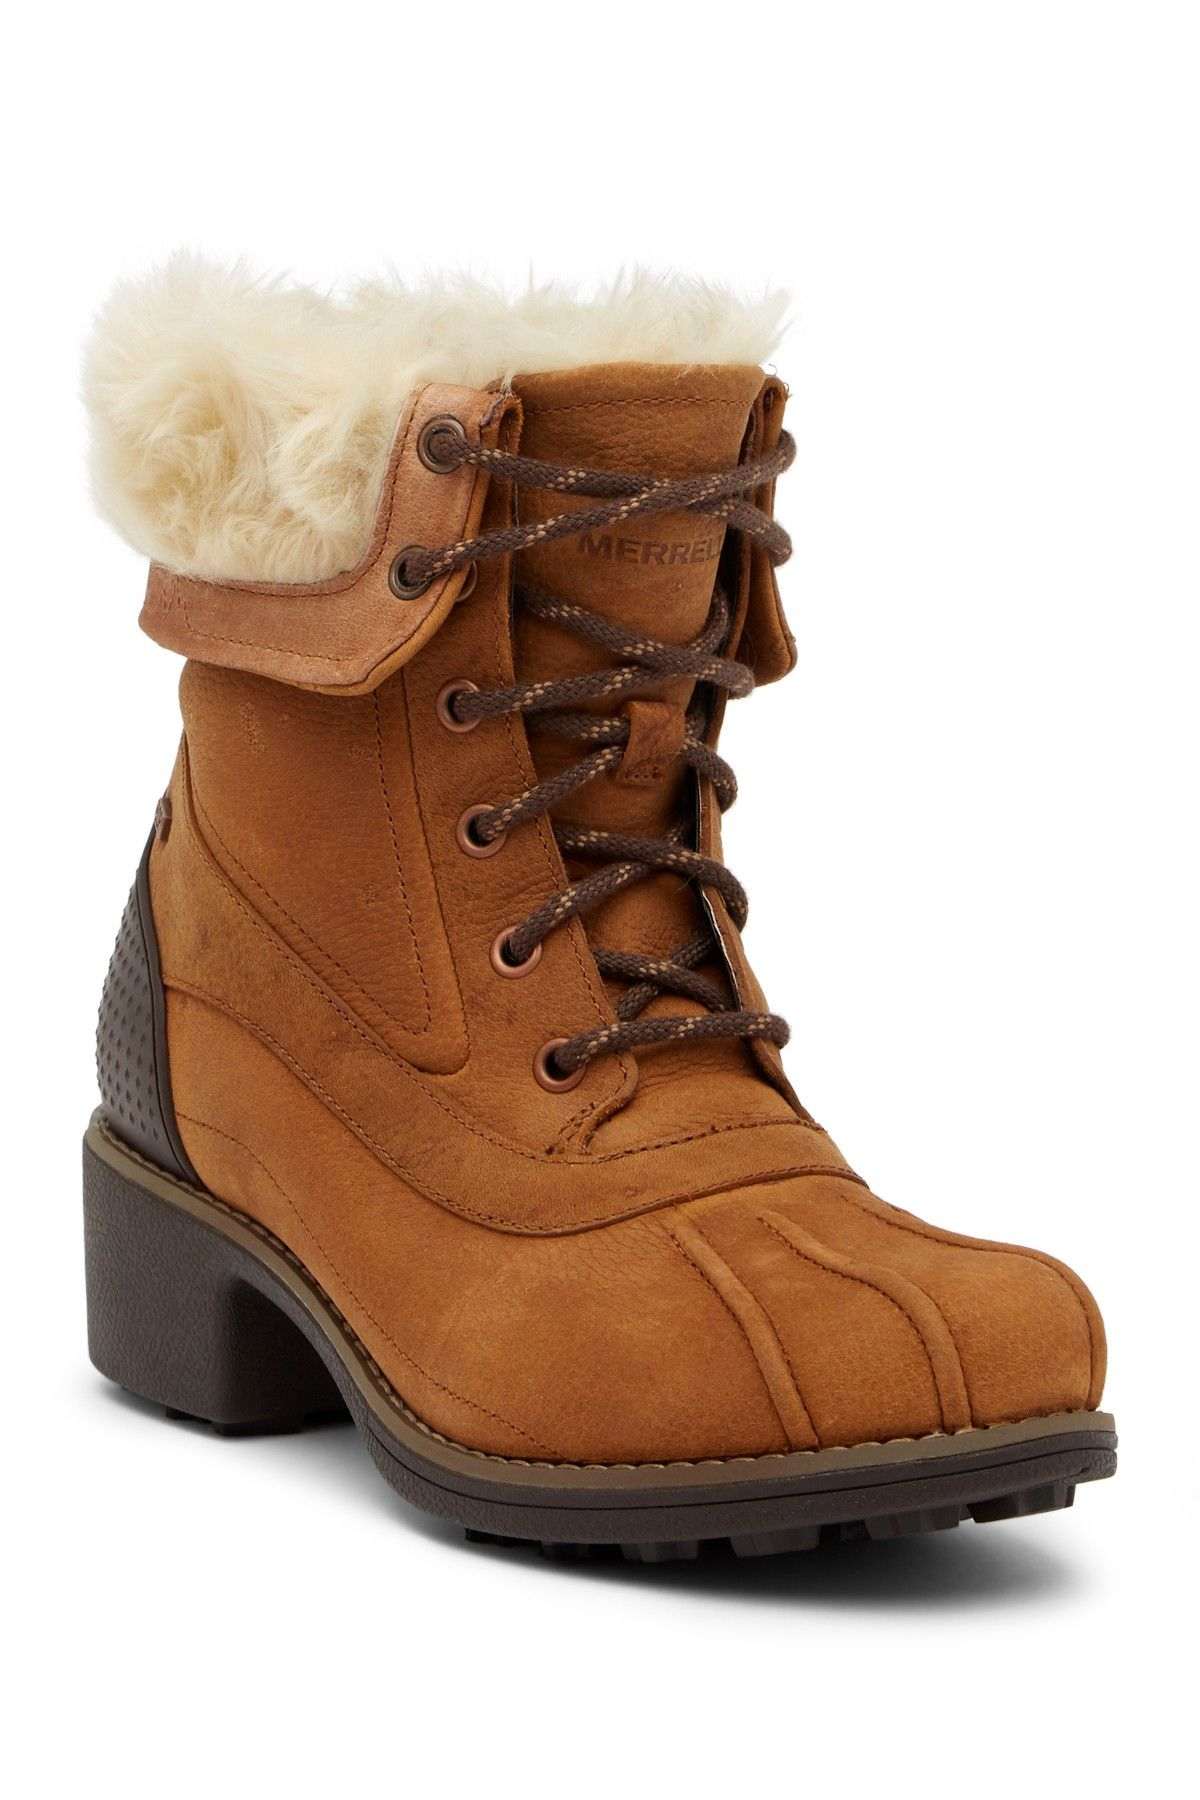 c0256aab32d Chateau Mid Lace Faux Fur Trimmed Waterproof Boot